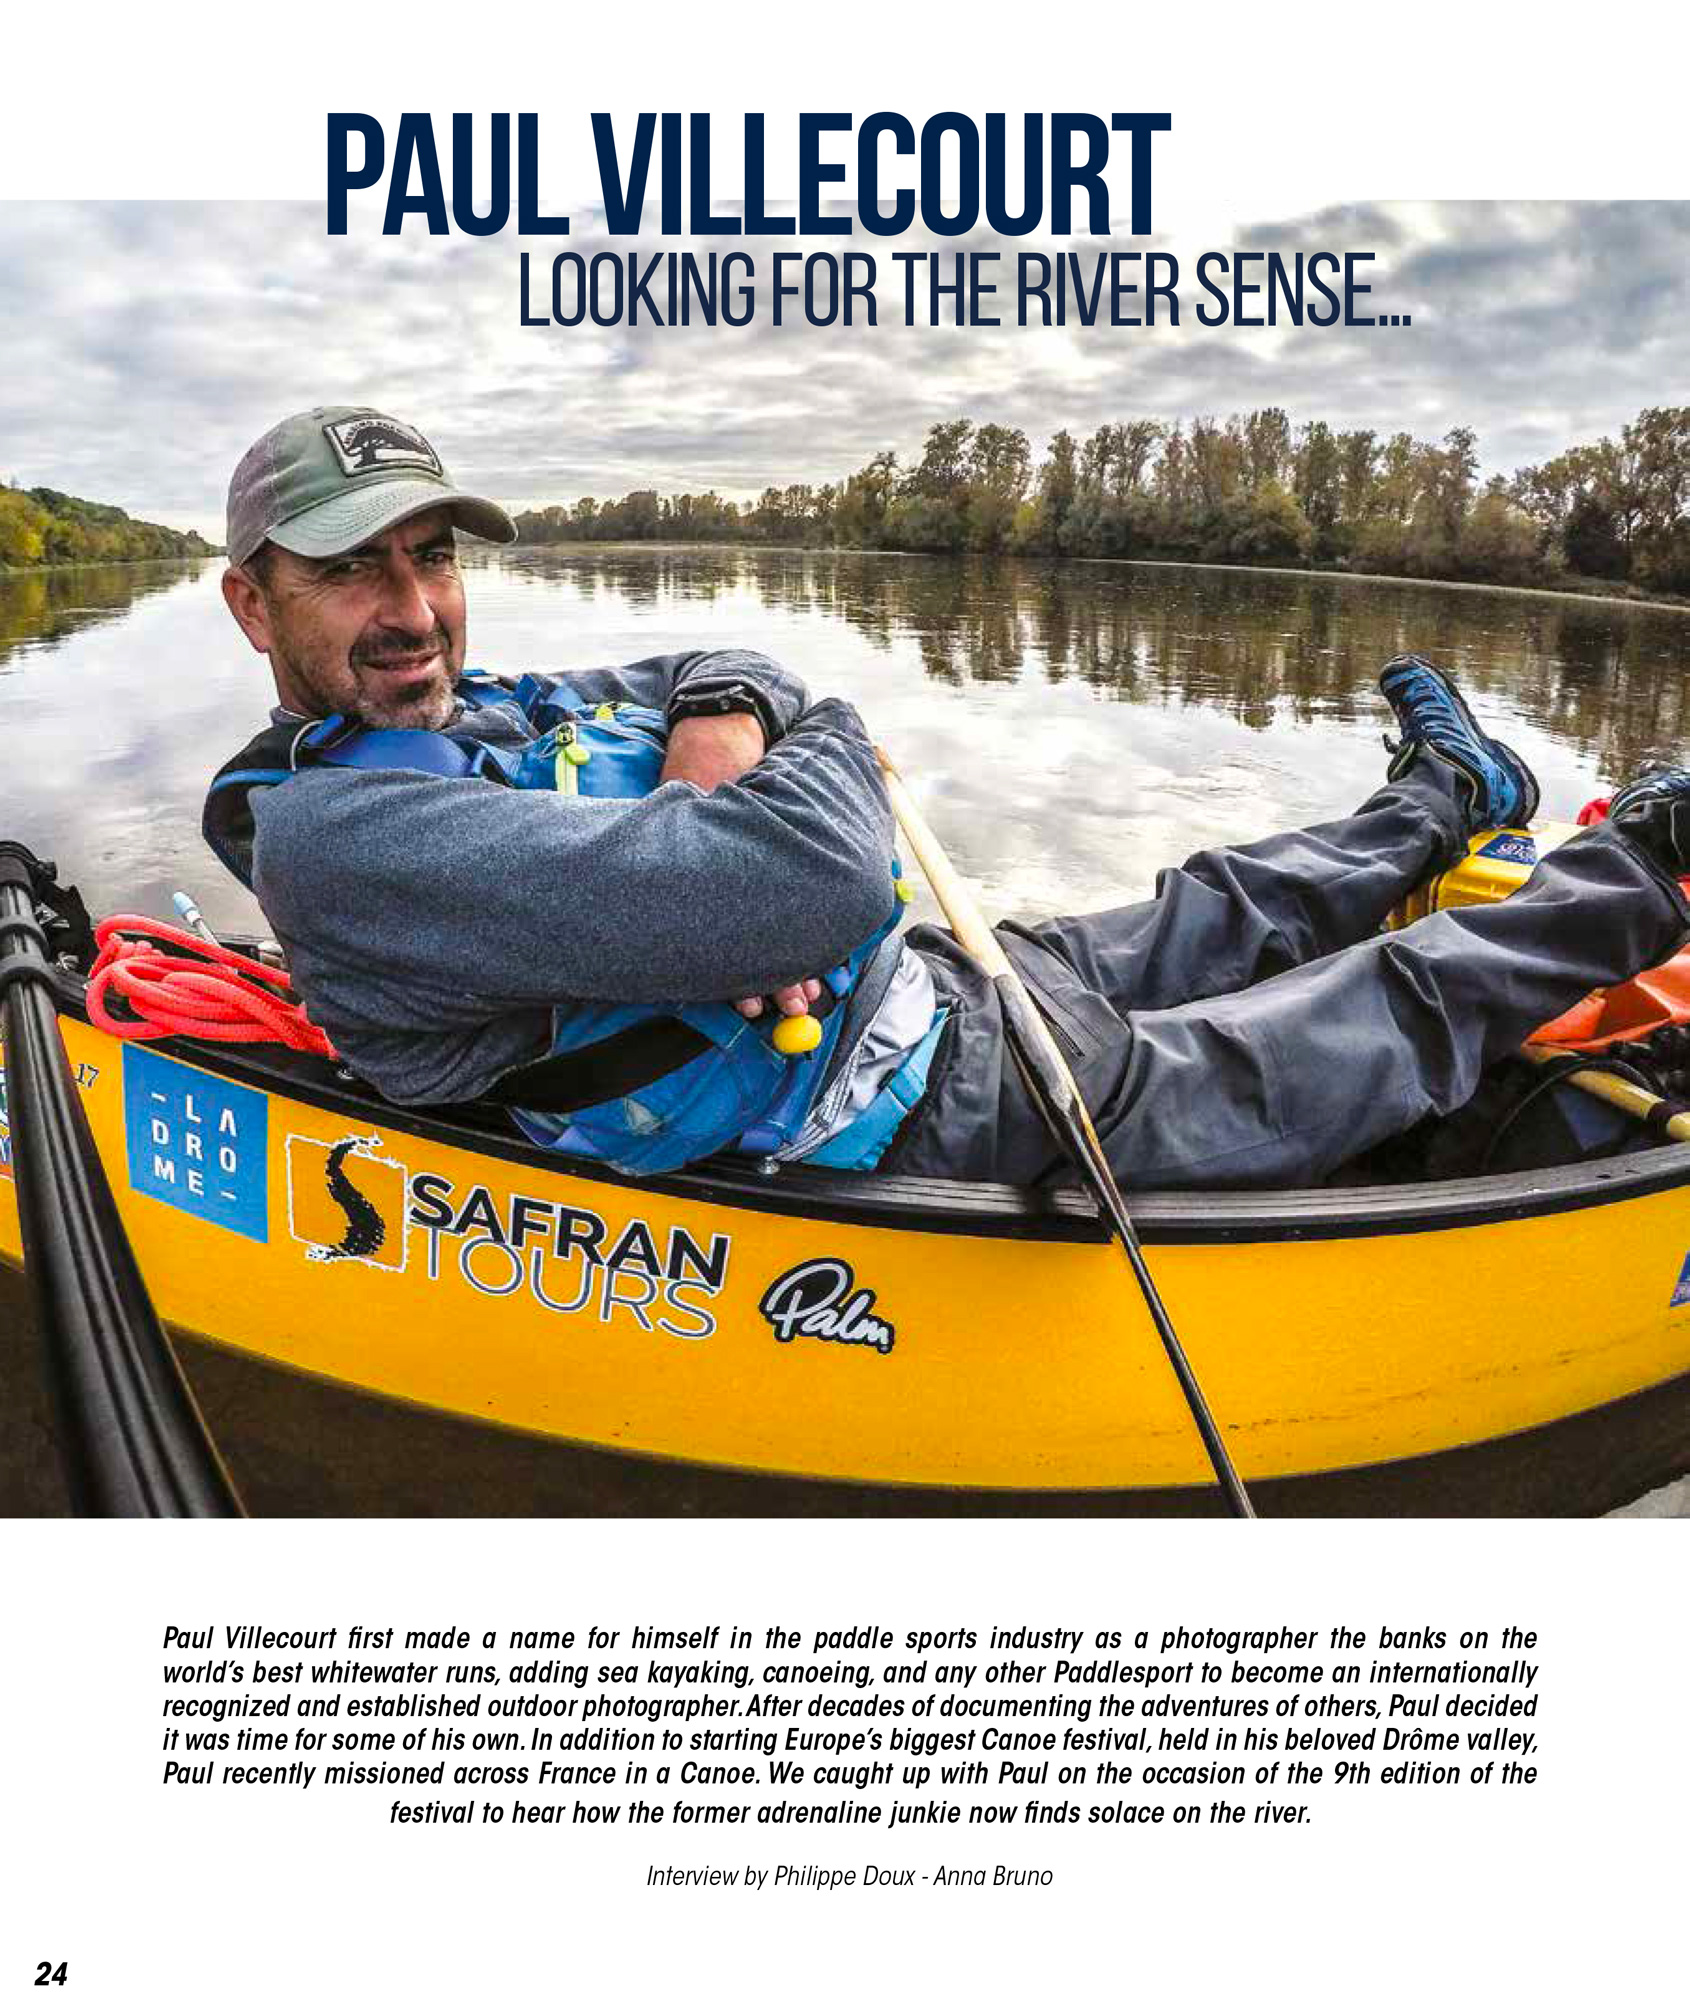 Interview in Paddle World magazine.